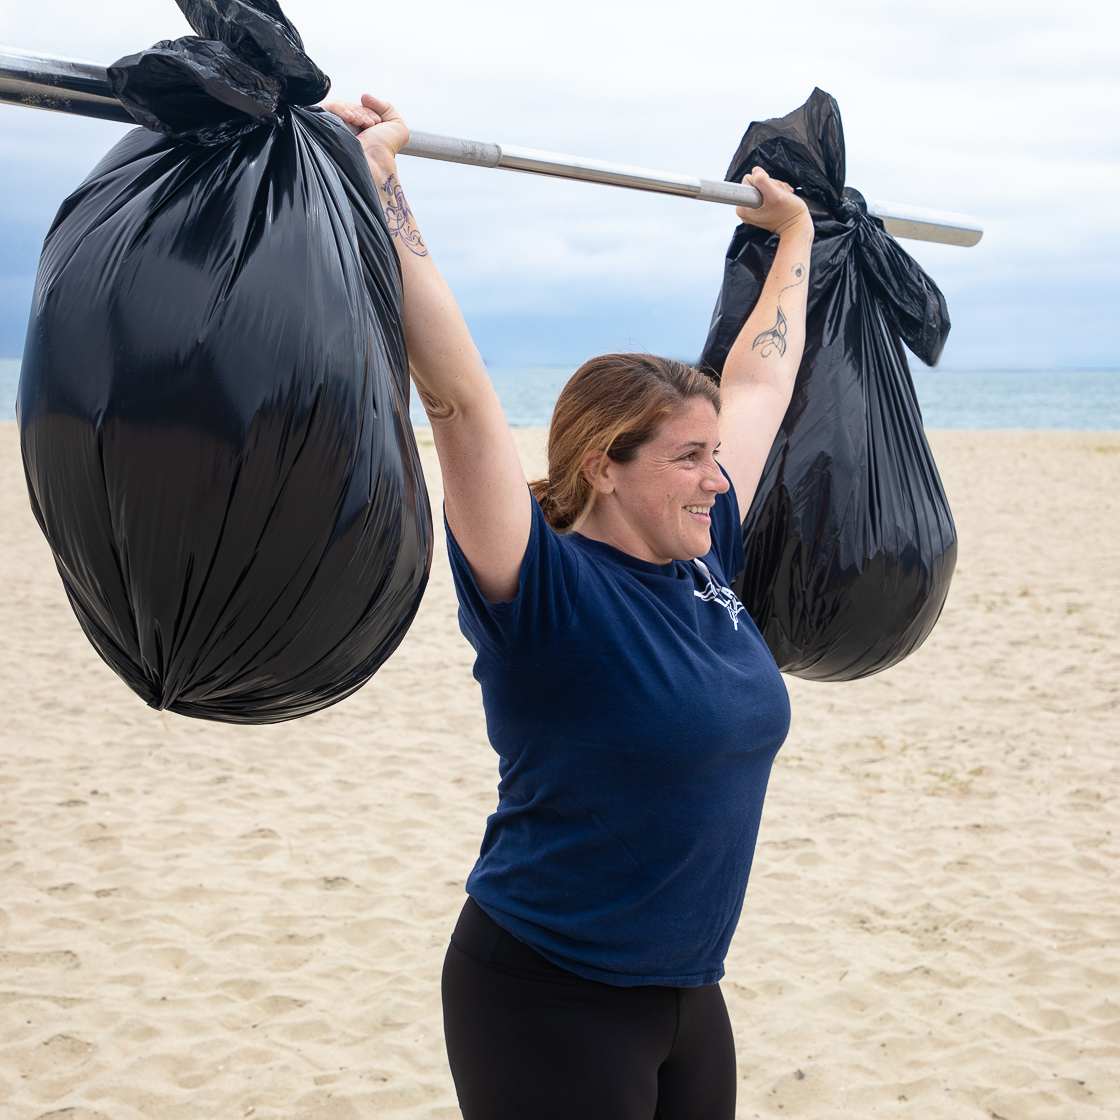 Iconix Beach Clean Up - April 24th